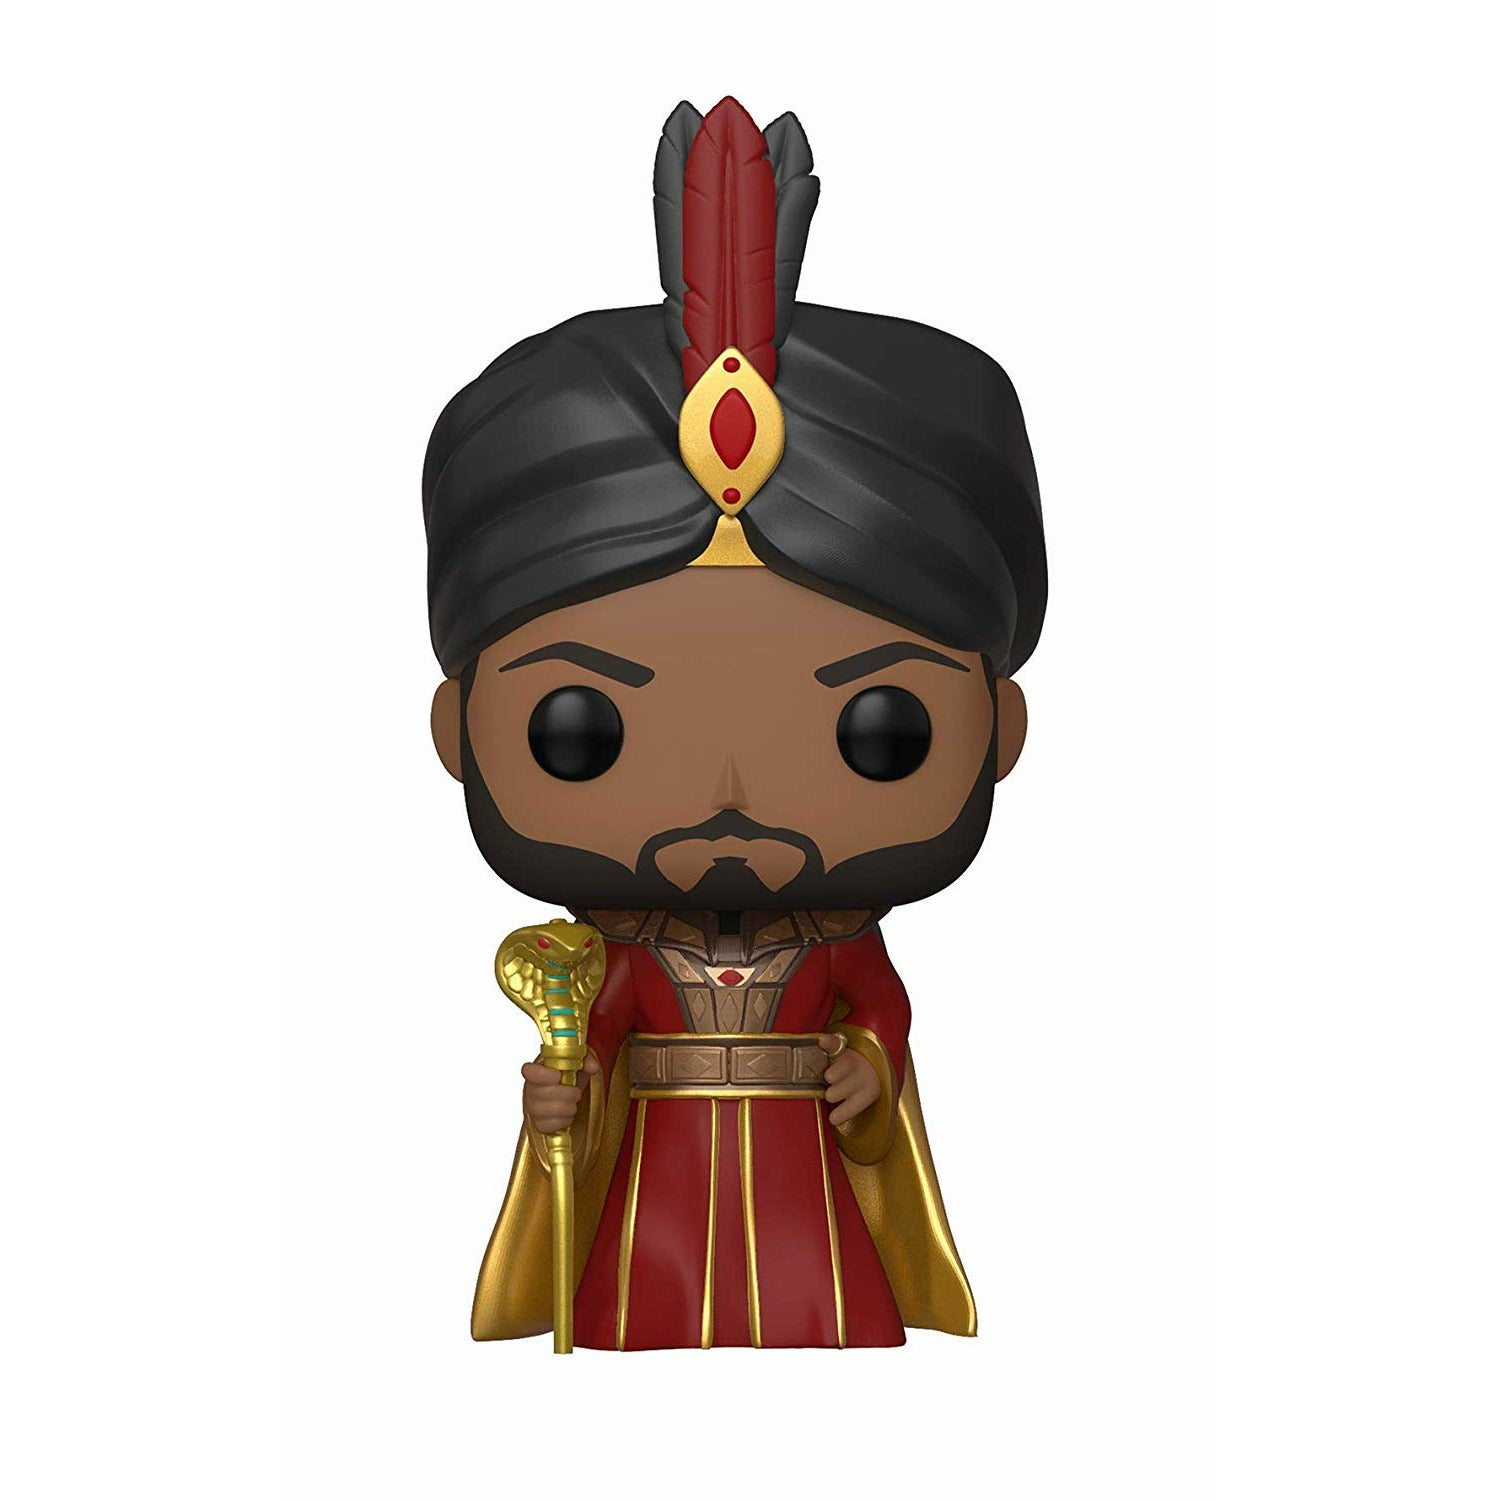 Aladdin Jafar The Royal Vizier Pop! Vinyl Figure